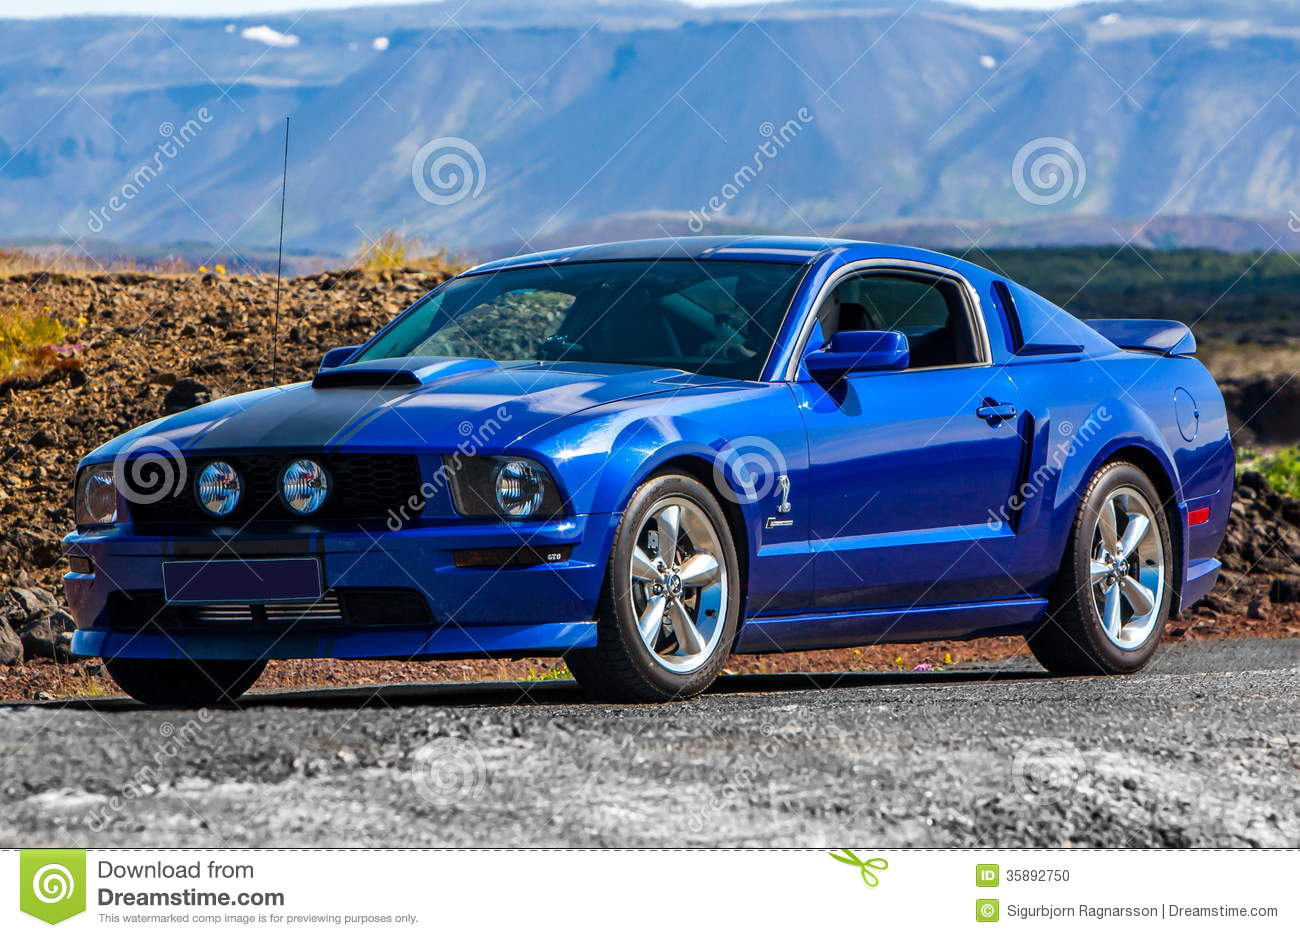 Ford Mustang GT Editorial Image Image Of Deluxe Auto